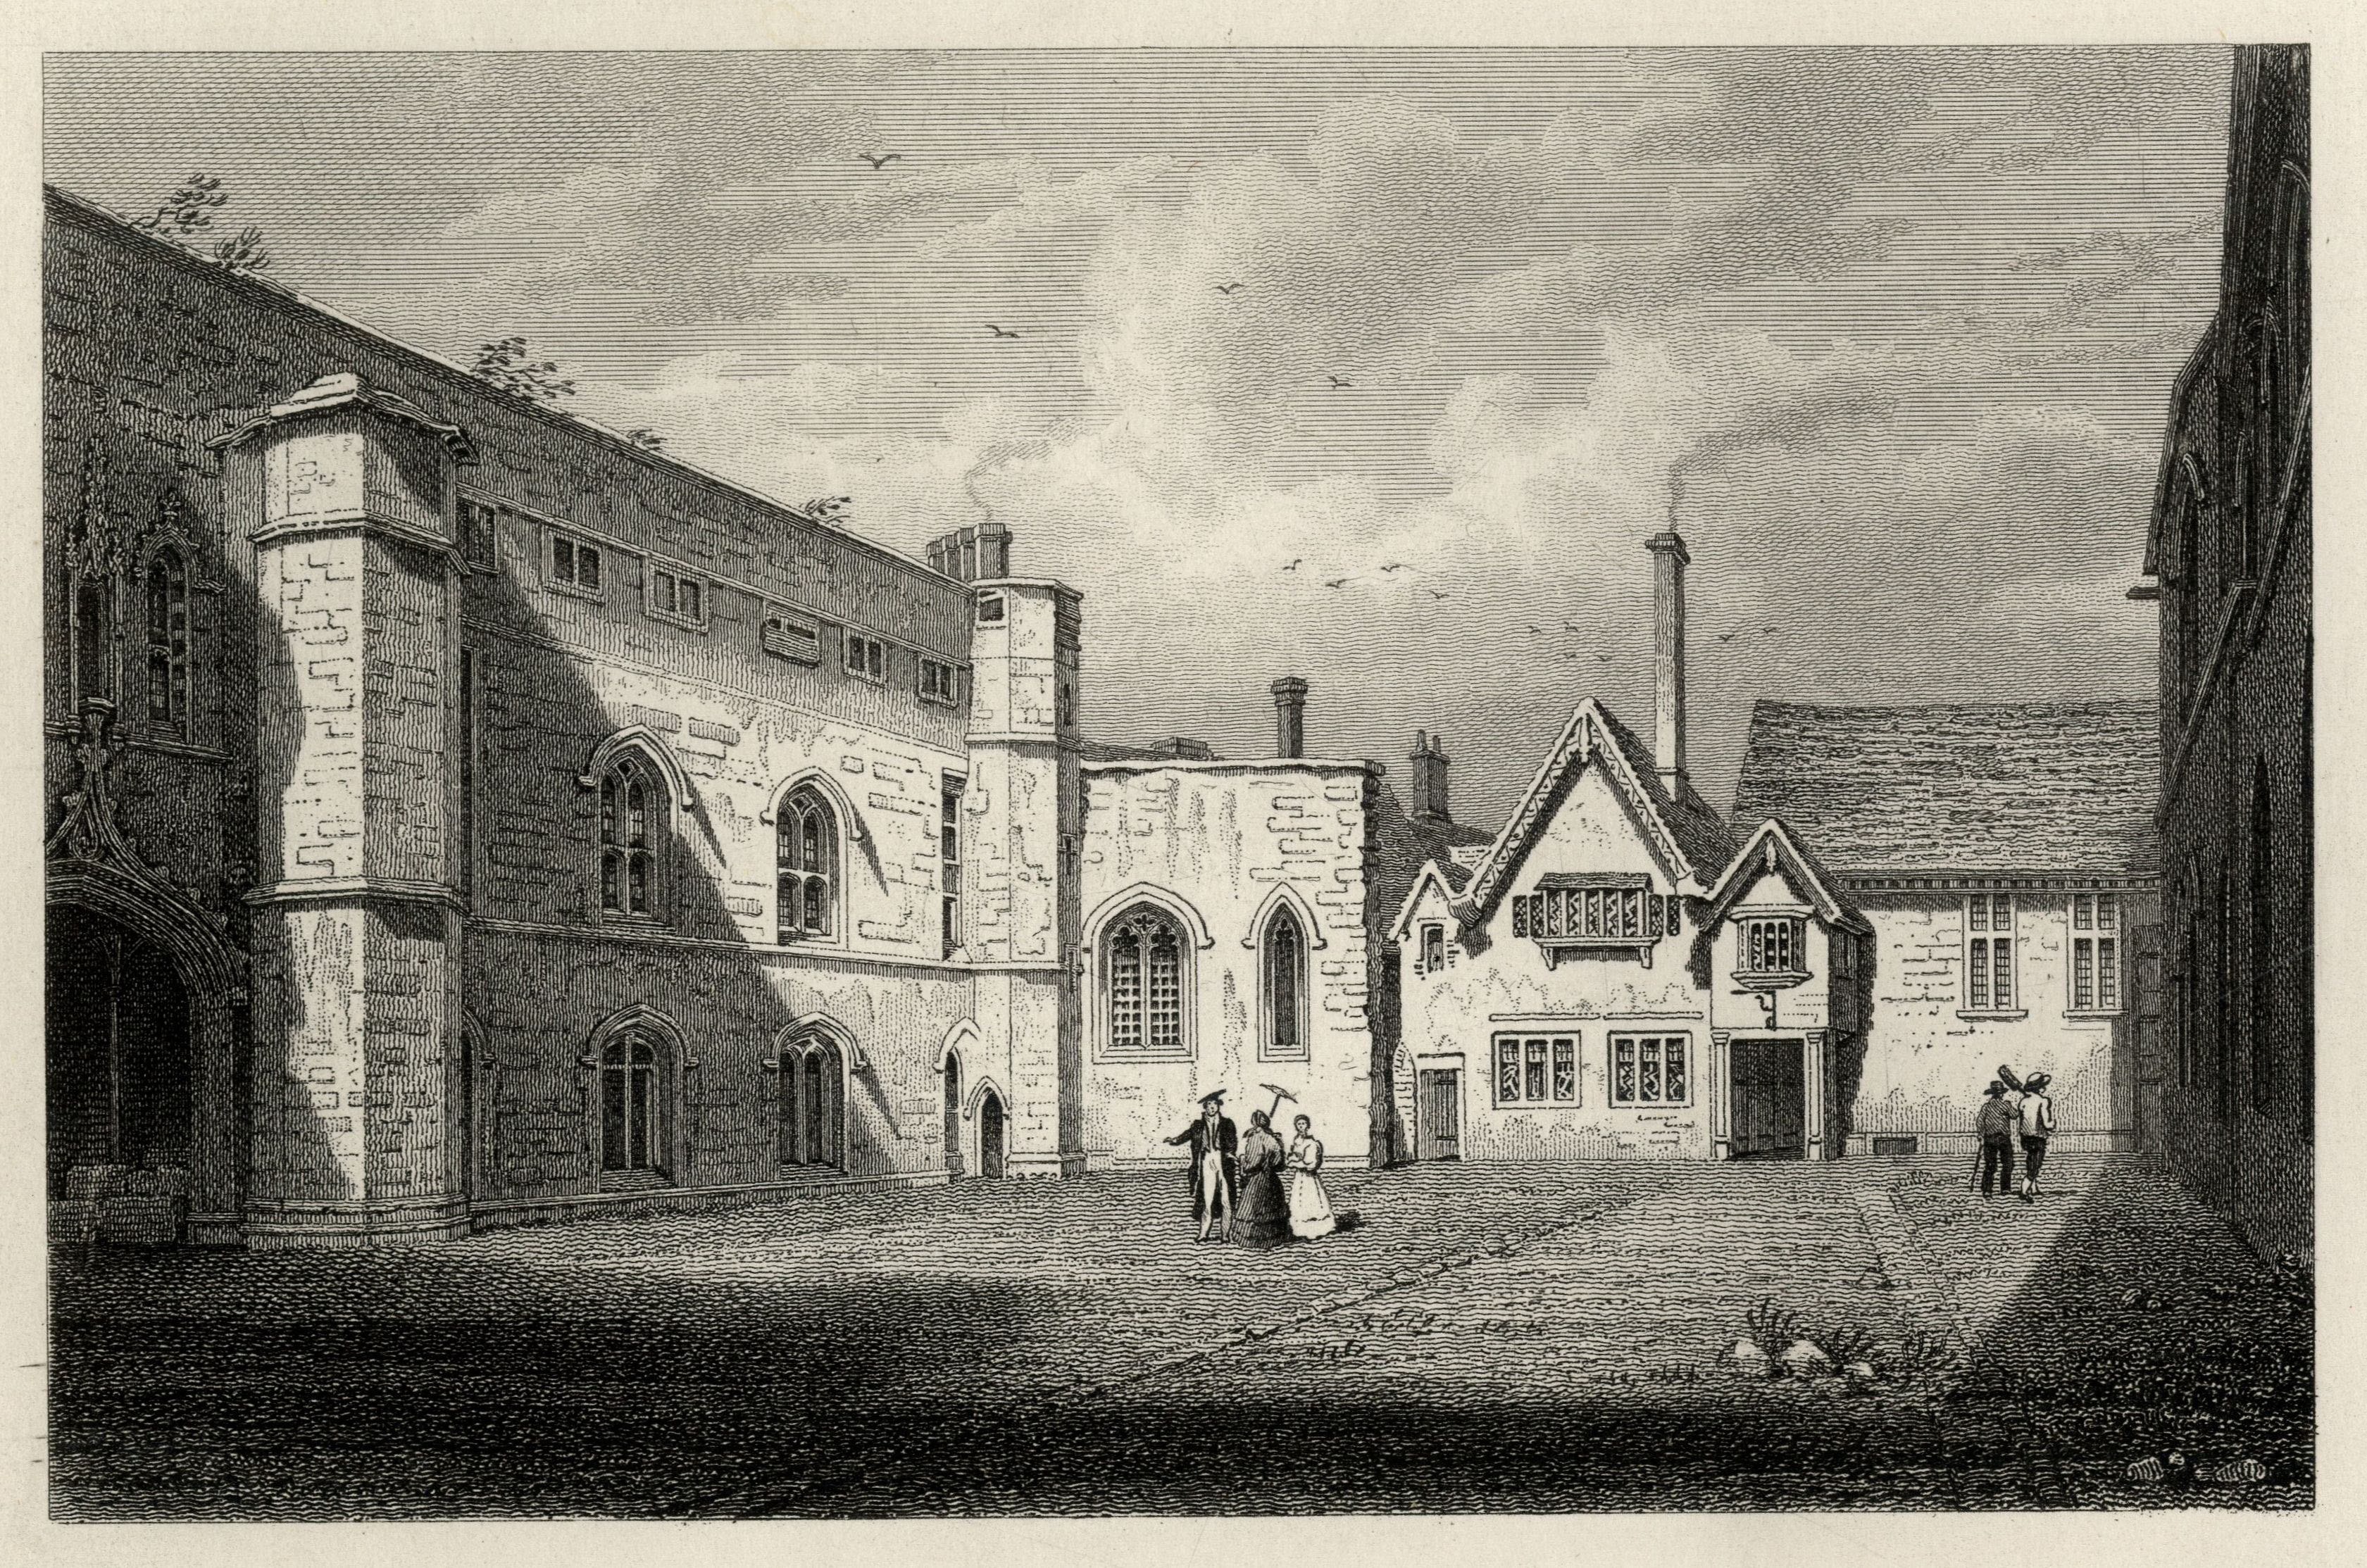 Old Court. The College's original dining hall is the gabled building at the centre, with smoke rising from its chimney. (Cooper's Memorials vol 1 p 225)